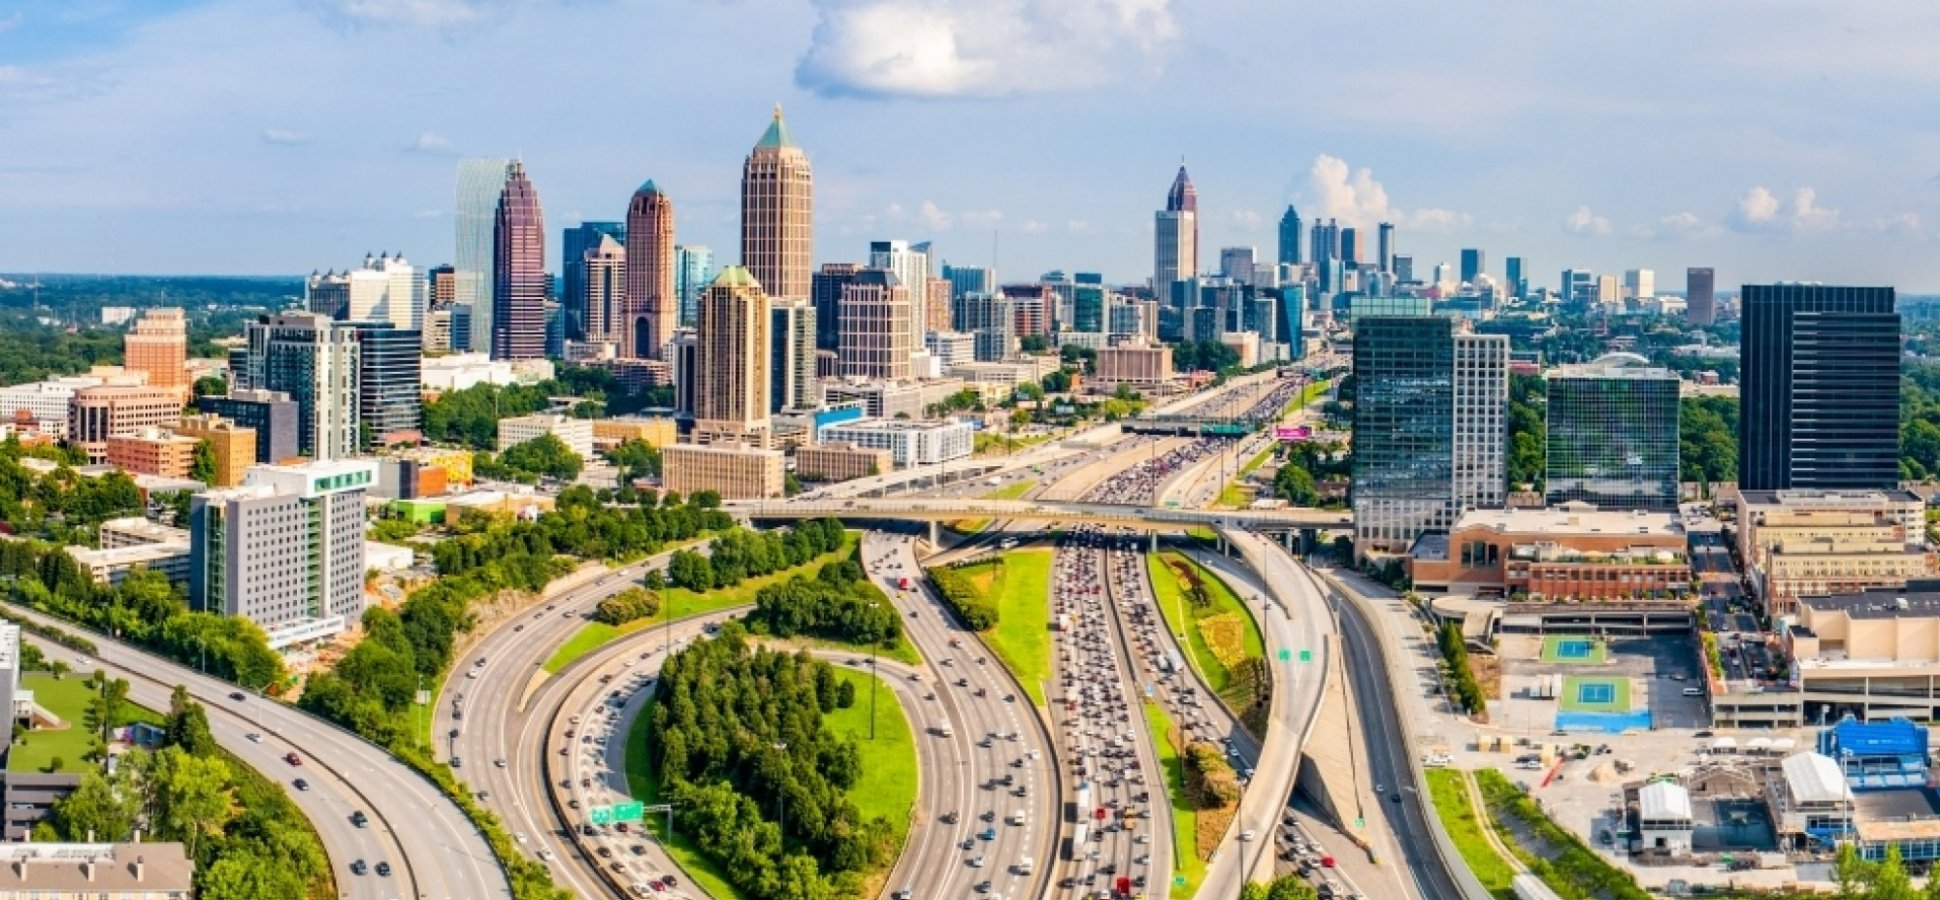 Meet the Top 10 Fast-Growing Companies Fueling Atlanta's High-Powered Startup Scene